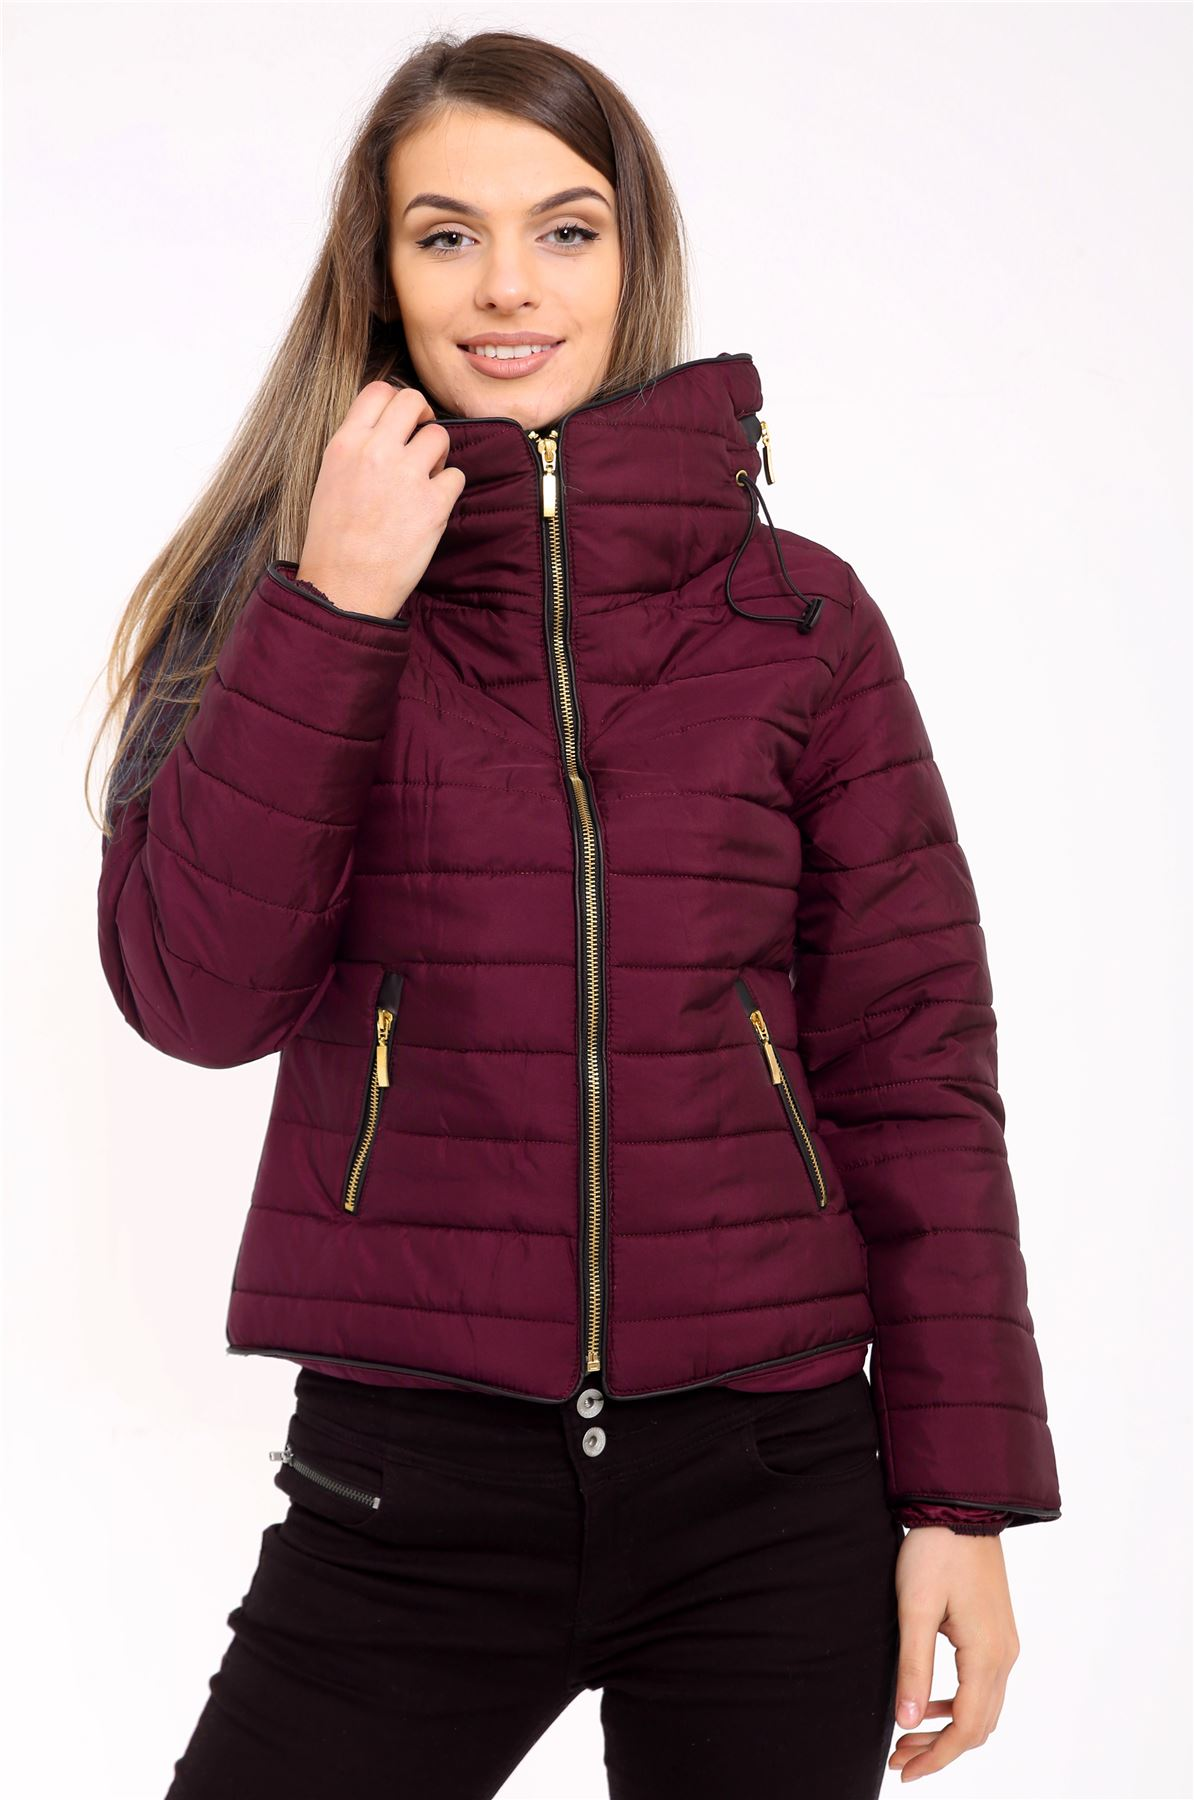 Free shipping BOTH ways on women bubble coats, from our vast selection of styles. Fast delivery, and 24/7/ real-person service with a smile. Click or call